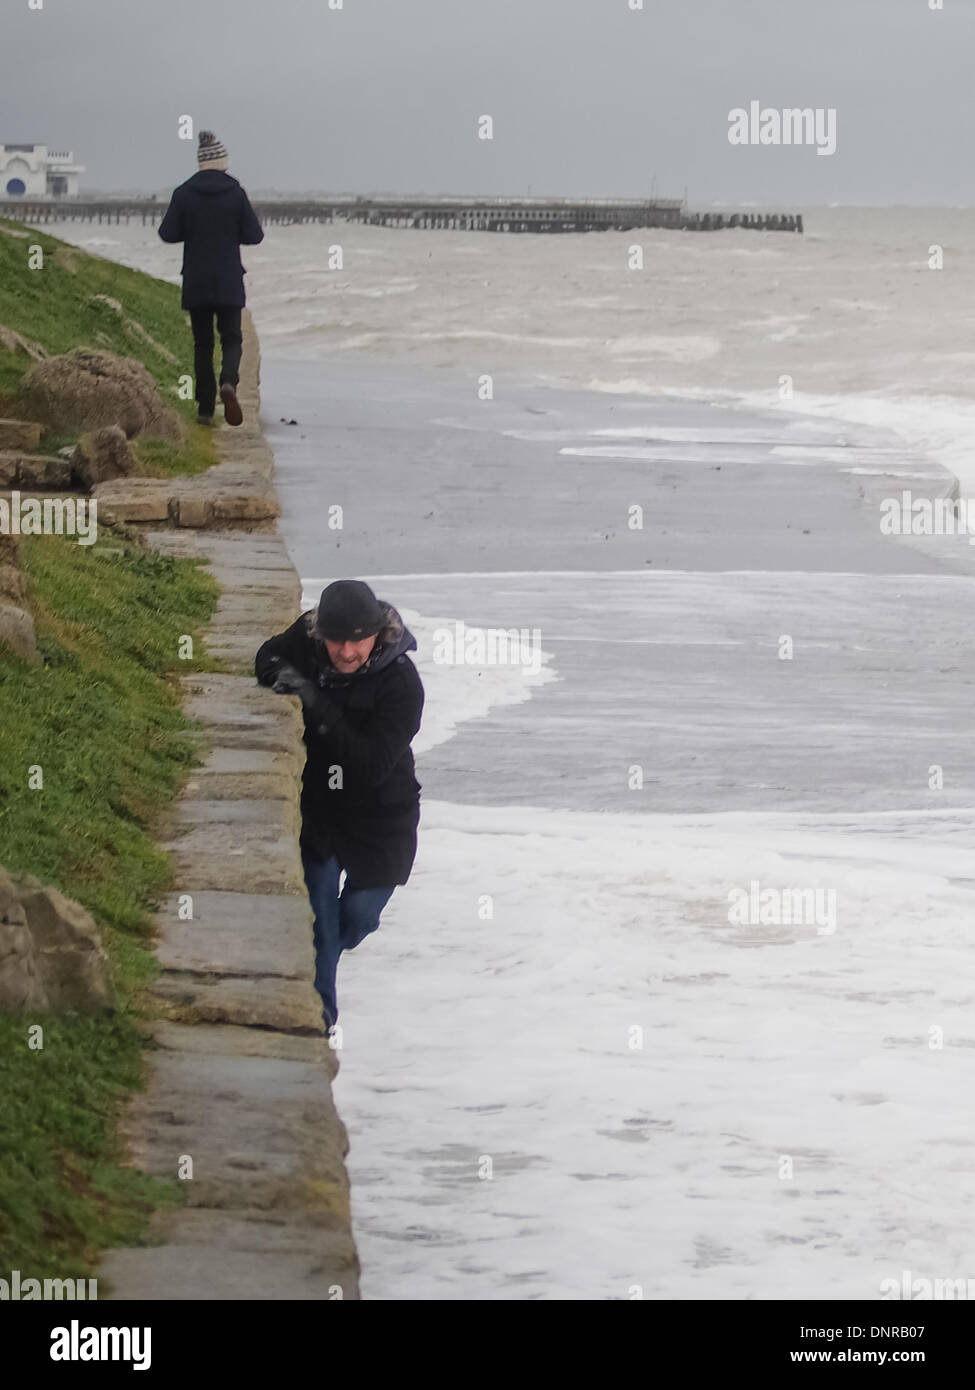 Portsmouth, England 4th January 2014. A man climbs onto  a wall beside a coastal footpath as a wave washes over the path below him. The UK has experienced a period of exceptionally high tides and large waves causing flooding in many coastal areas. Credit:  simon evans/Alamy Live News - Stock Image